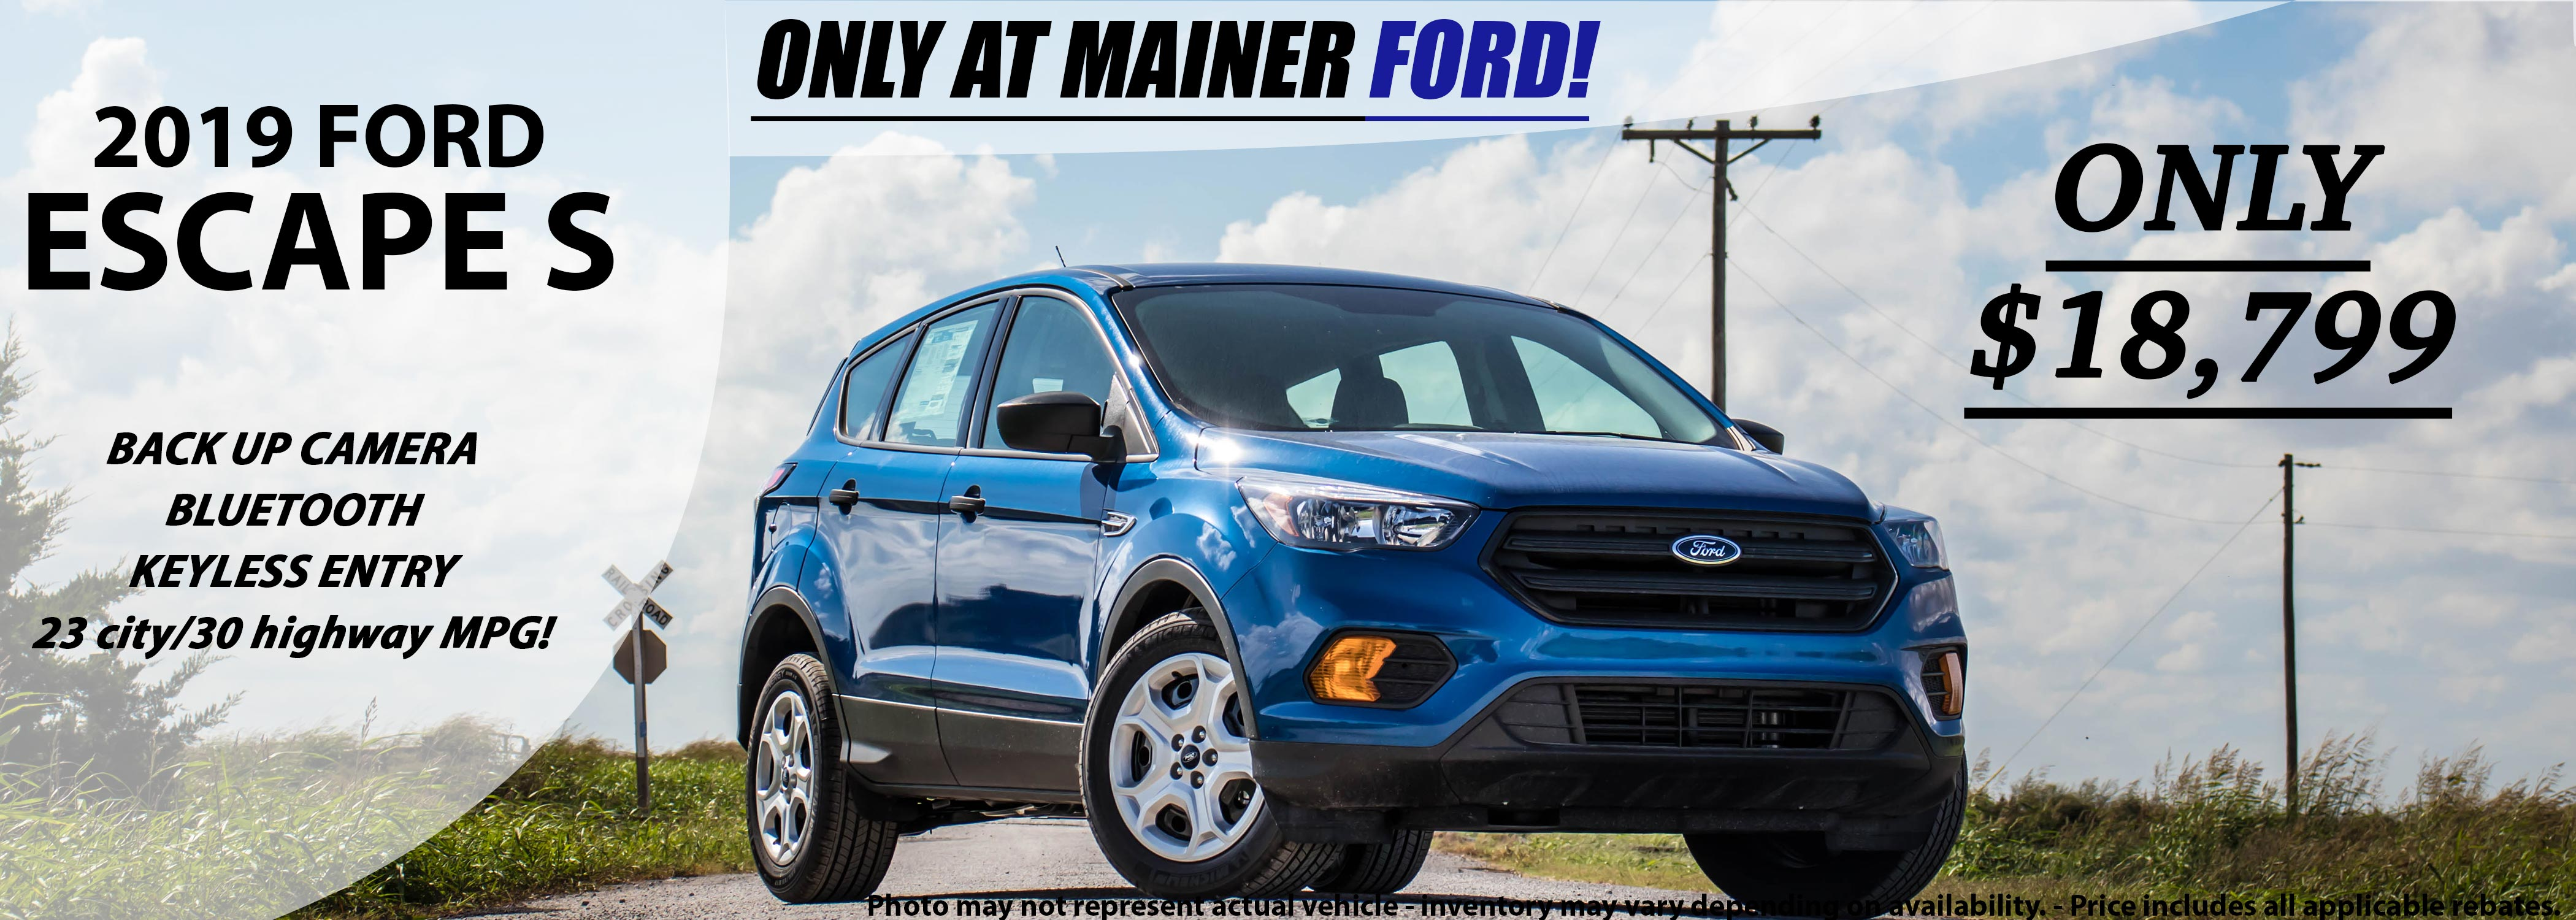 Ford Dealership Okc >> Mainer Ford: New & Used Cars, Ford Dealership in Okarche ...